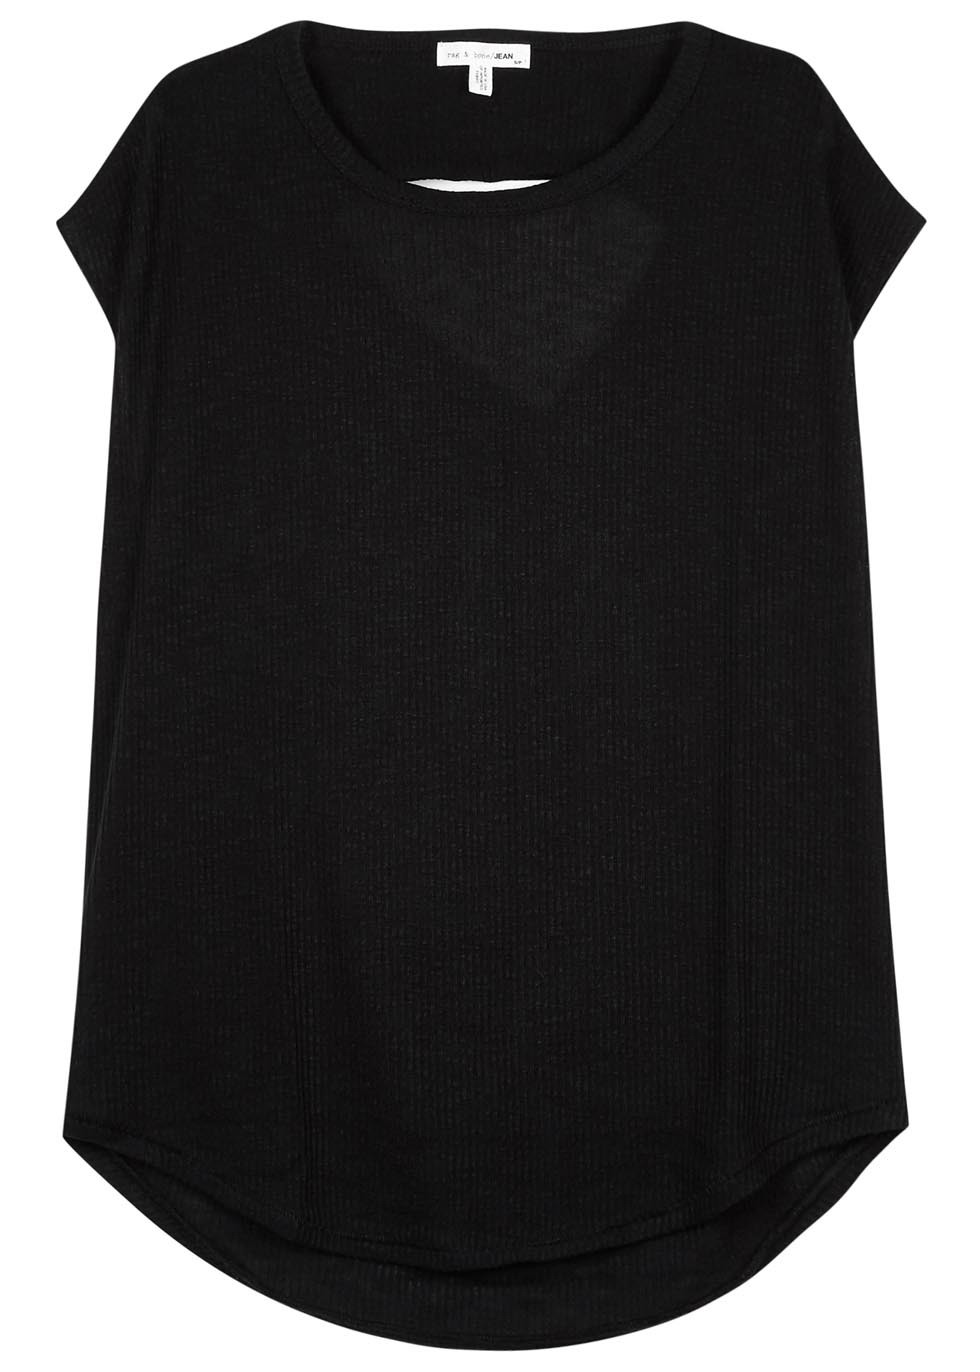 Highland Open Back Cotton T Shirt - neckline: round neck; pattern: plain; length: below the bottom; style: t-shirt; predominant colour: black; occasions: casual; fibres: cotton - 100%; fit: body skimming; sleeve length: short sleeve; sleeve style: standard; pattern type: fabric; texture group: jersey - stretchy/drapey; season: s/s 2016; wardrobe: basic